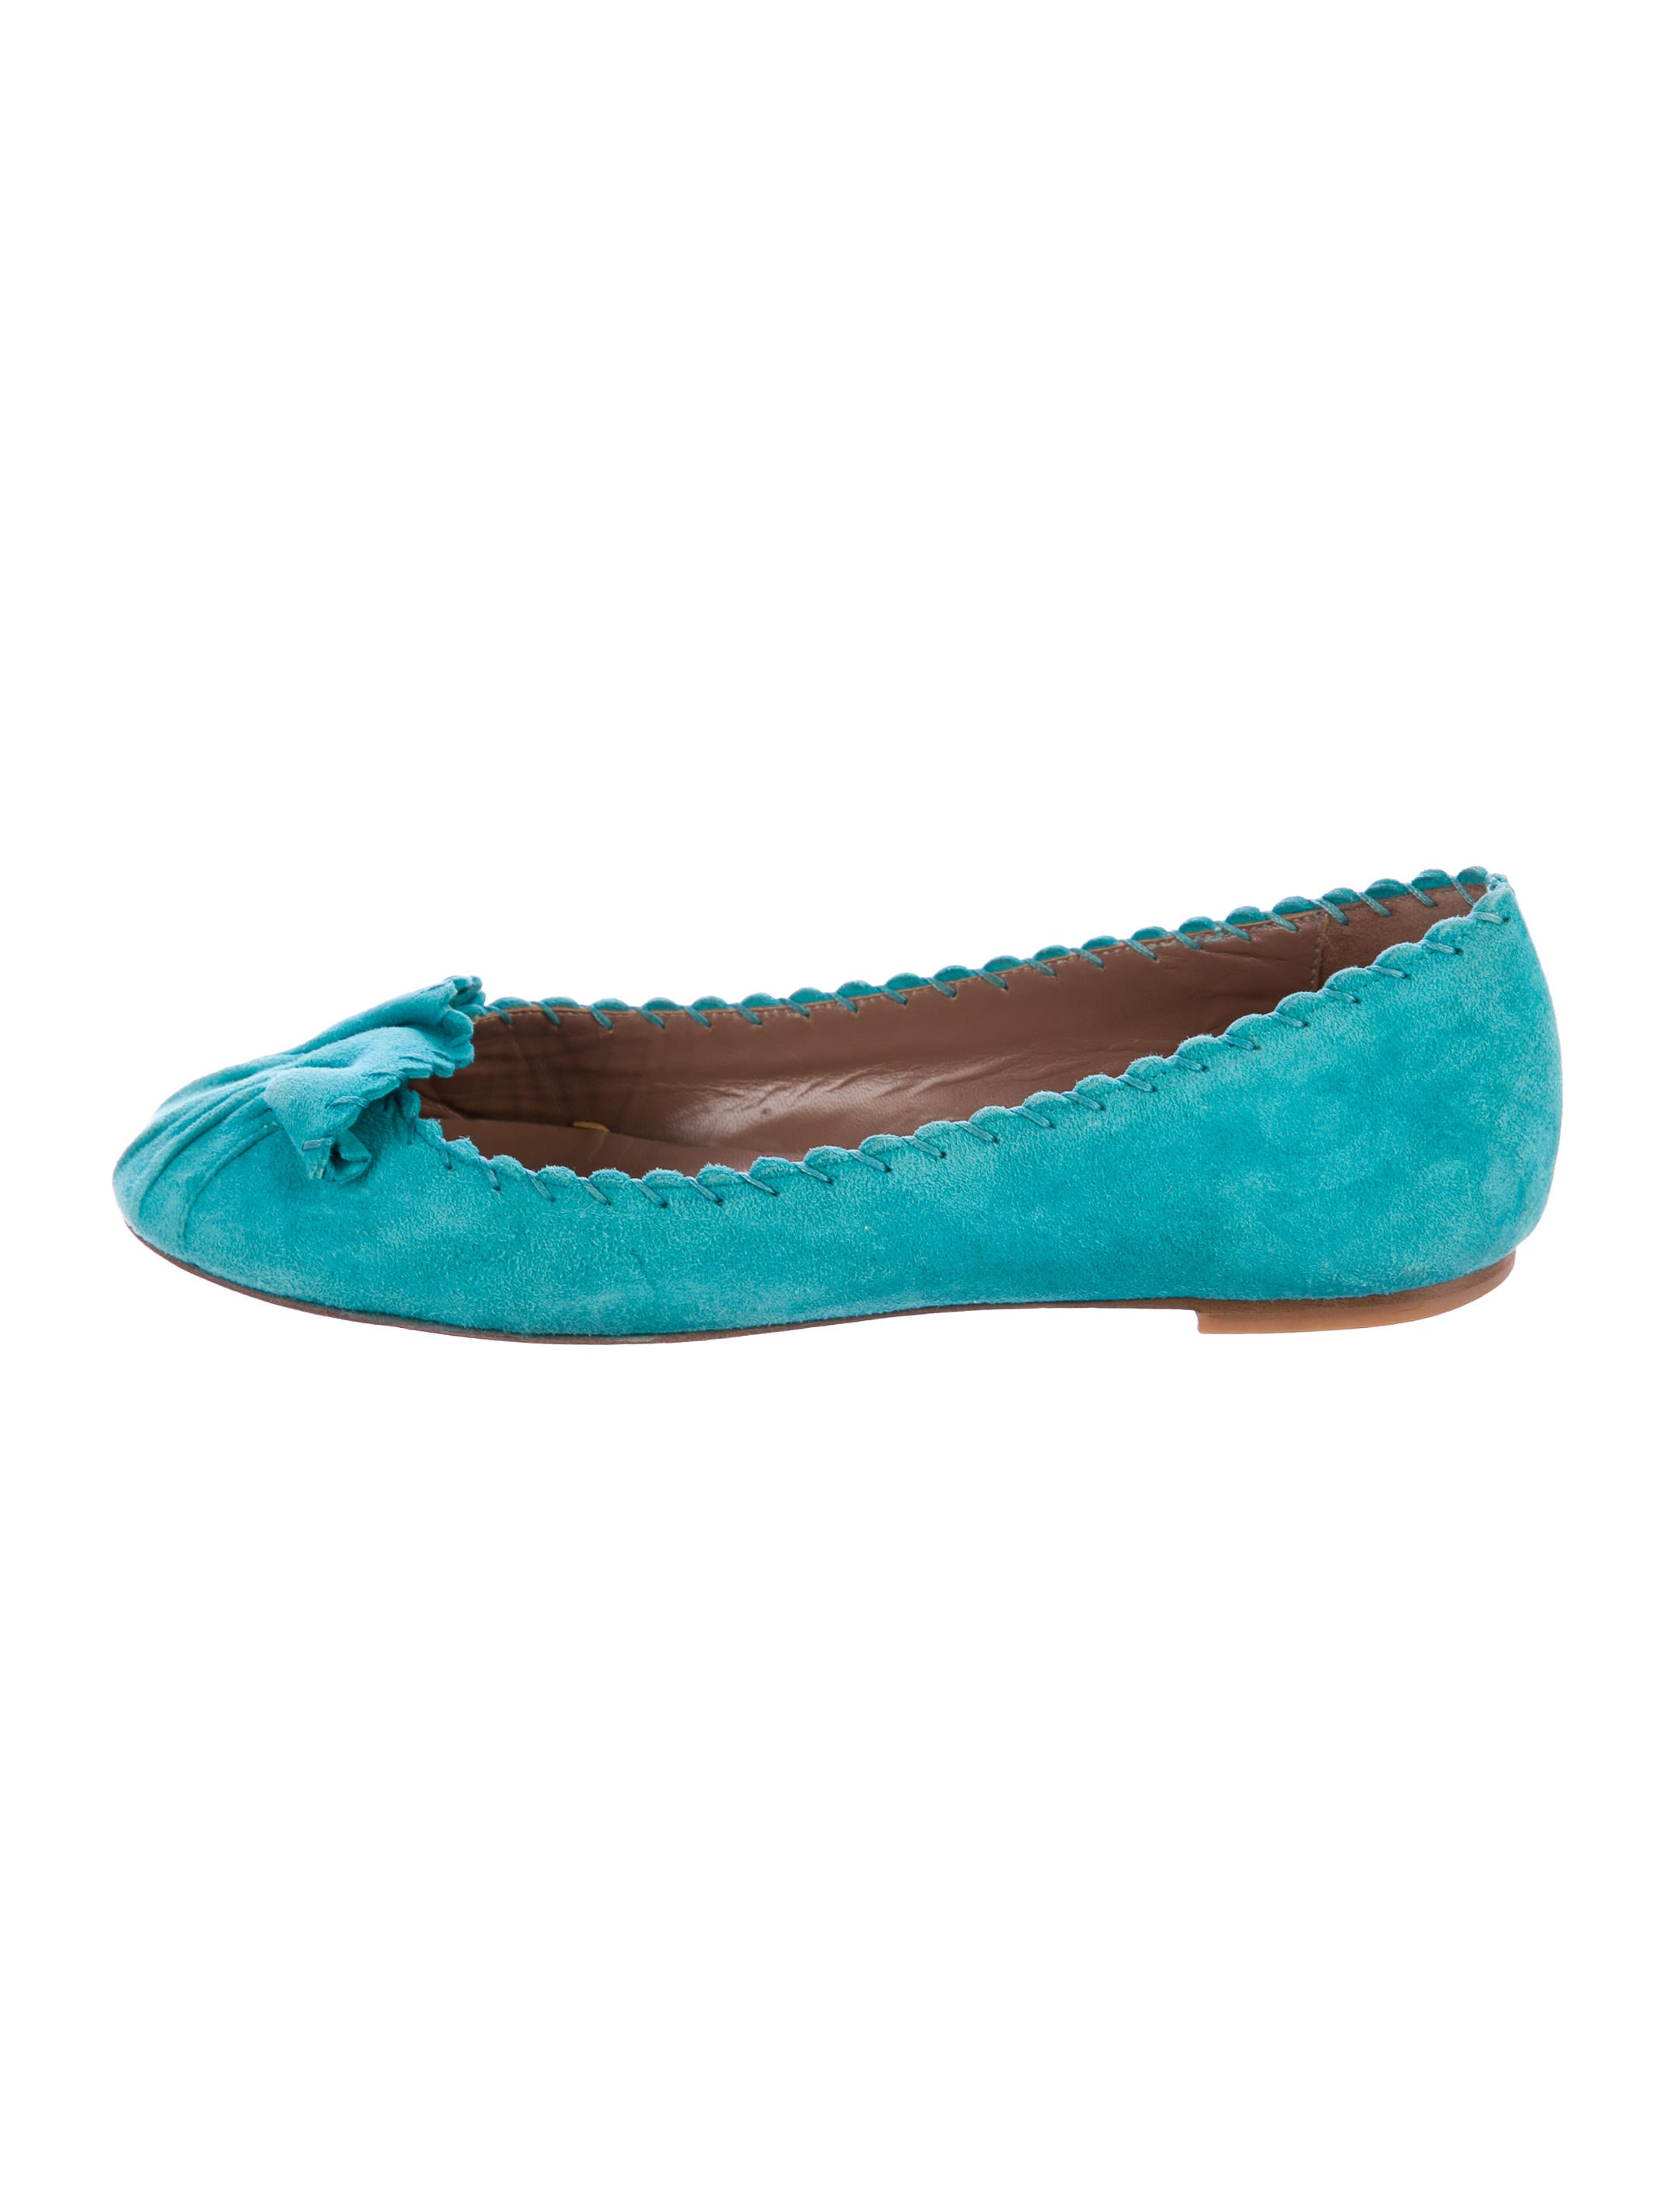 Delage Satin Embroidered Flats outlet shop for wholesale price for sale free shipping new arrival Szsm0